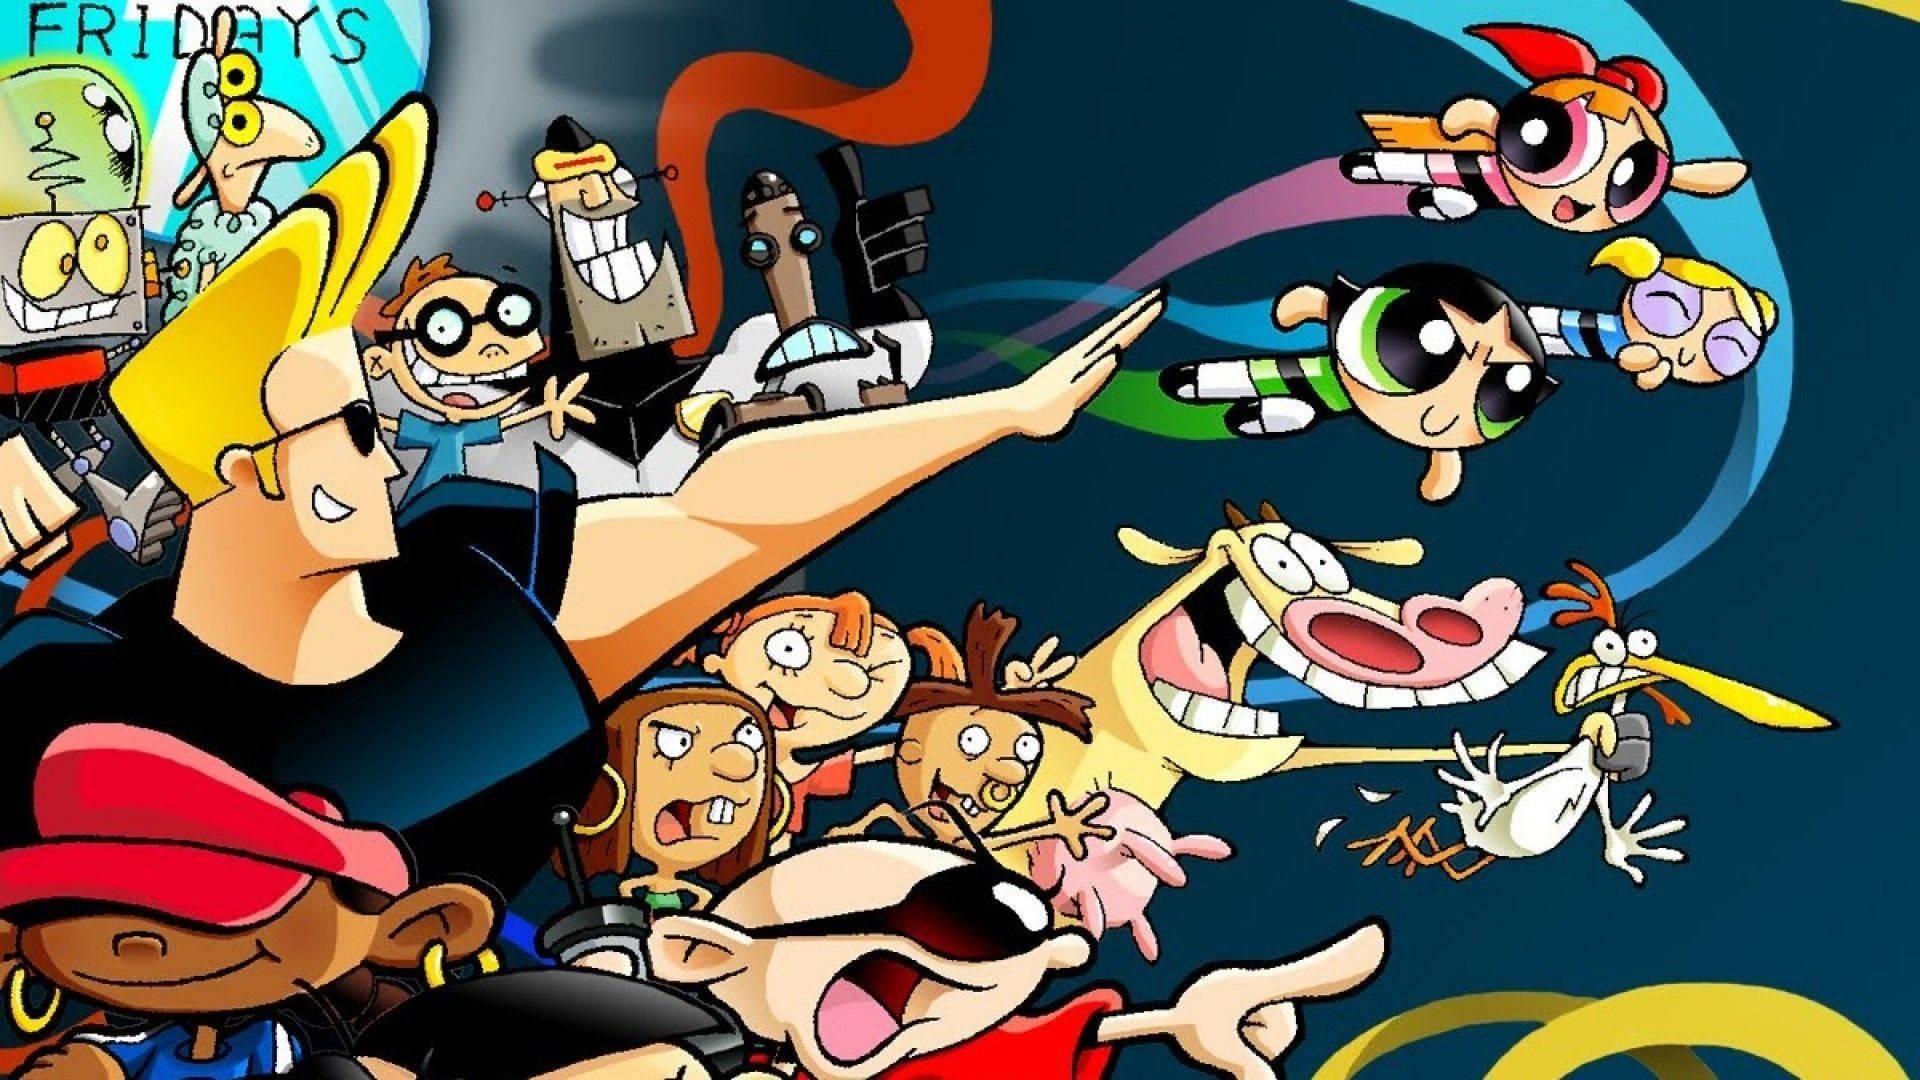 1920x1080 ... free download cartoon network wallpaper pixelstalk net ...